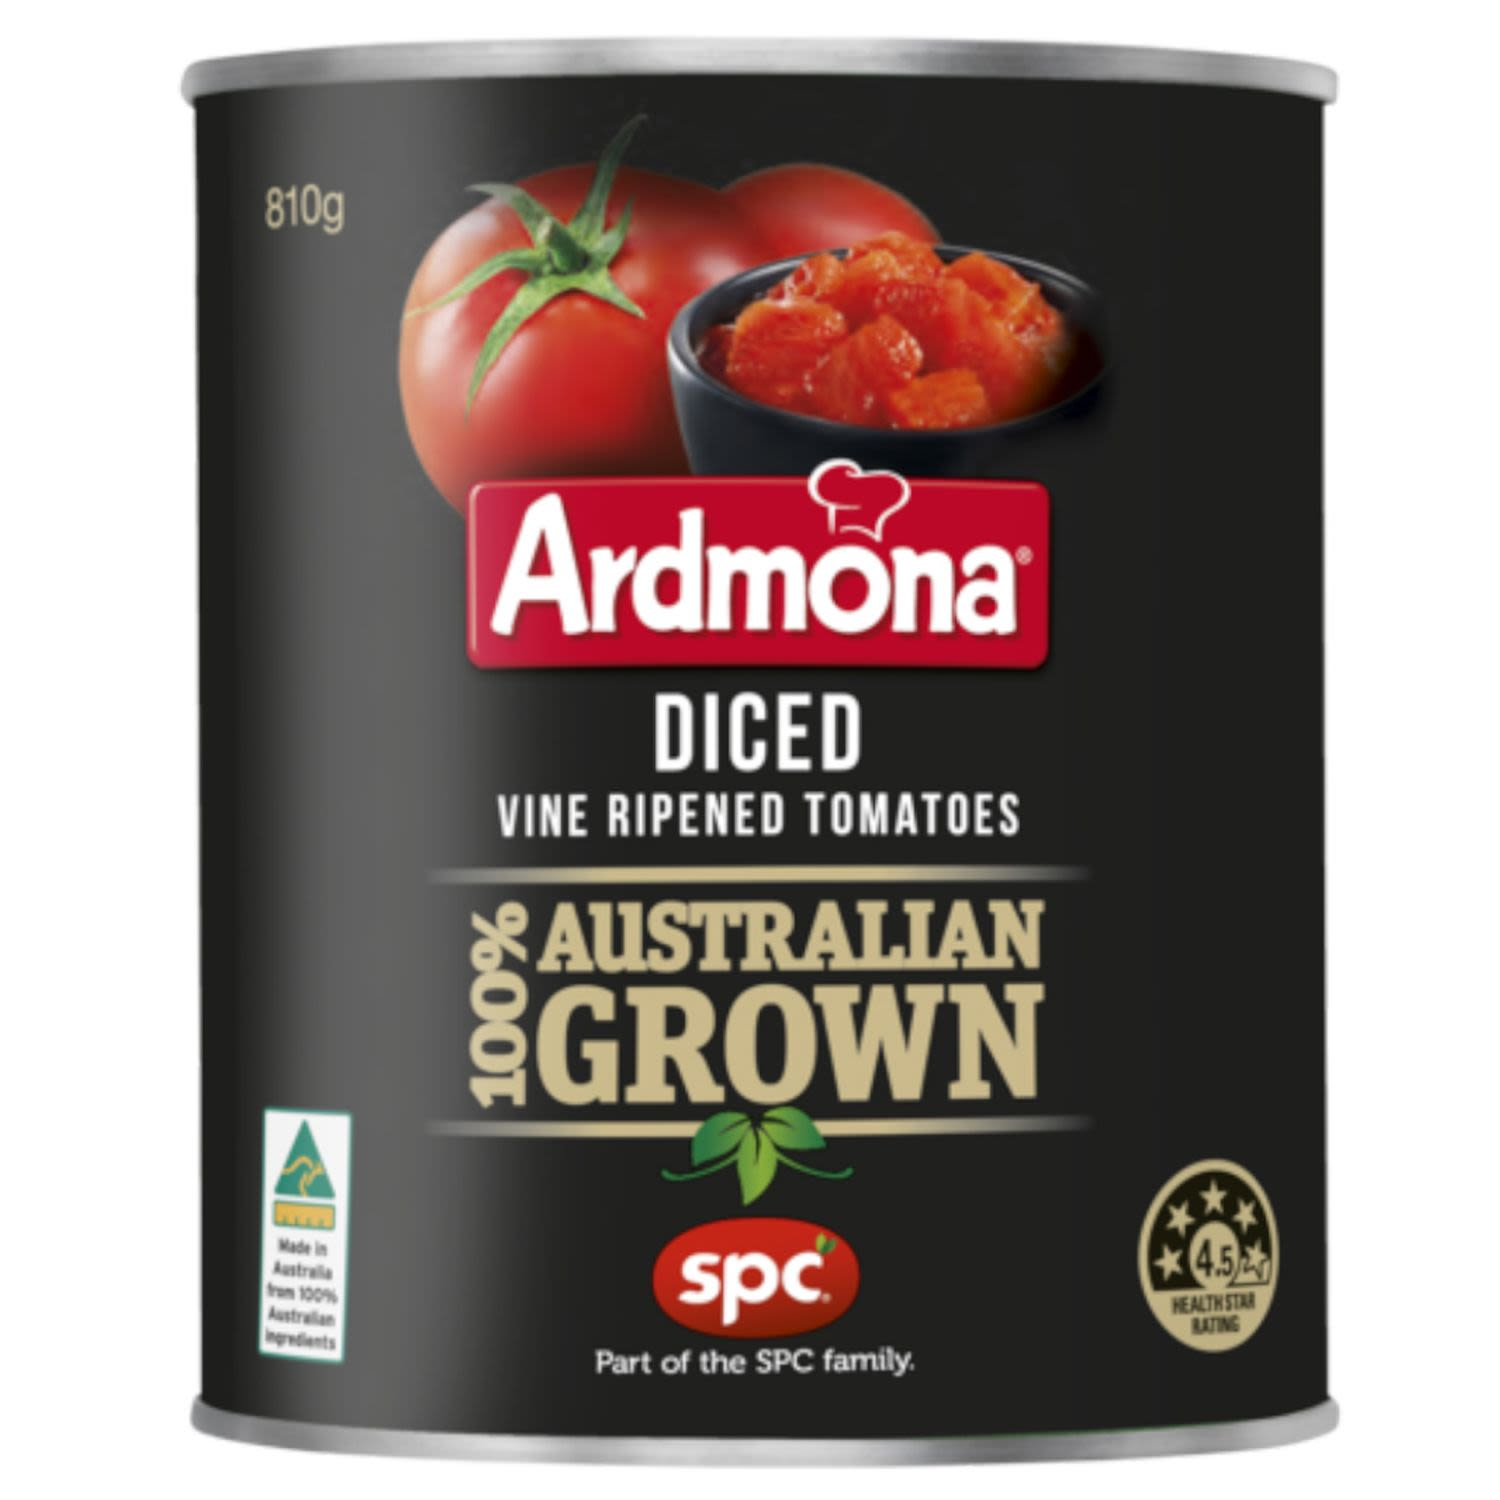 Ardmona Chopped Vine Ripened Tomatoes.  100% Australian grown.  Mark Hill, Timmering, Victoria.  Mark Hill is a tomato grower from Timmering, Northern Victoria. He is one of a select group of Australian tomato growers, who provide quality tomatoes for Ardmona products.  - No artificial colours, flavours or preservatives.  - Tomatoes are a source of the antioxidant lycopene.  - No added salt or sugar.